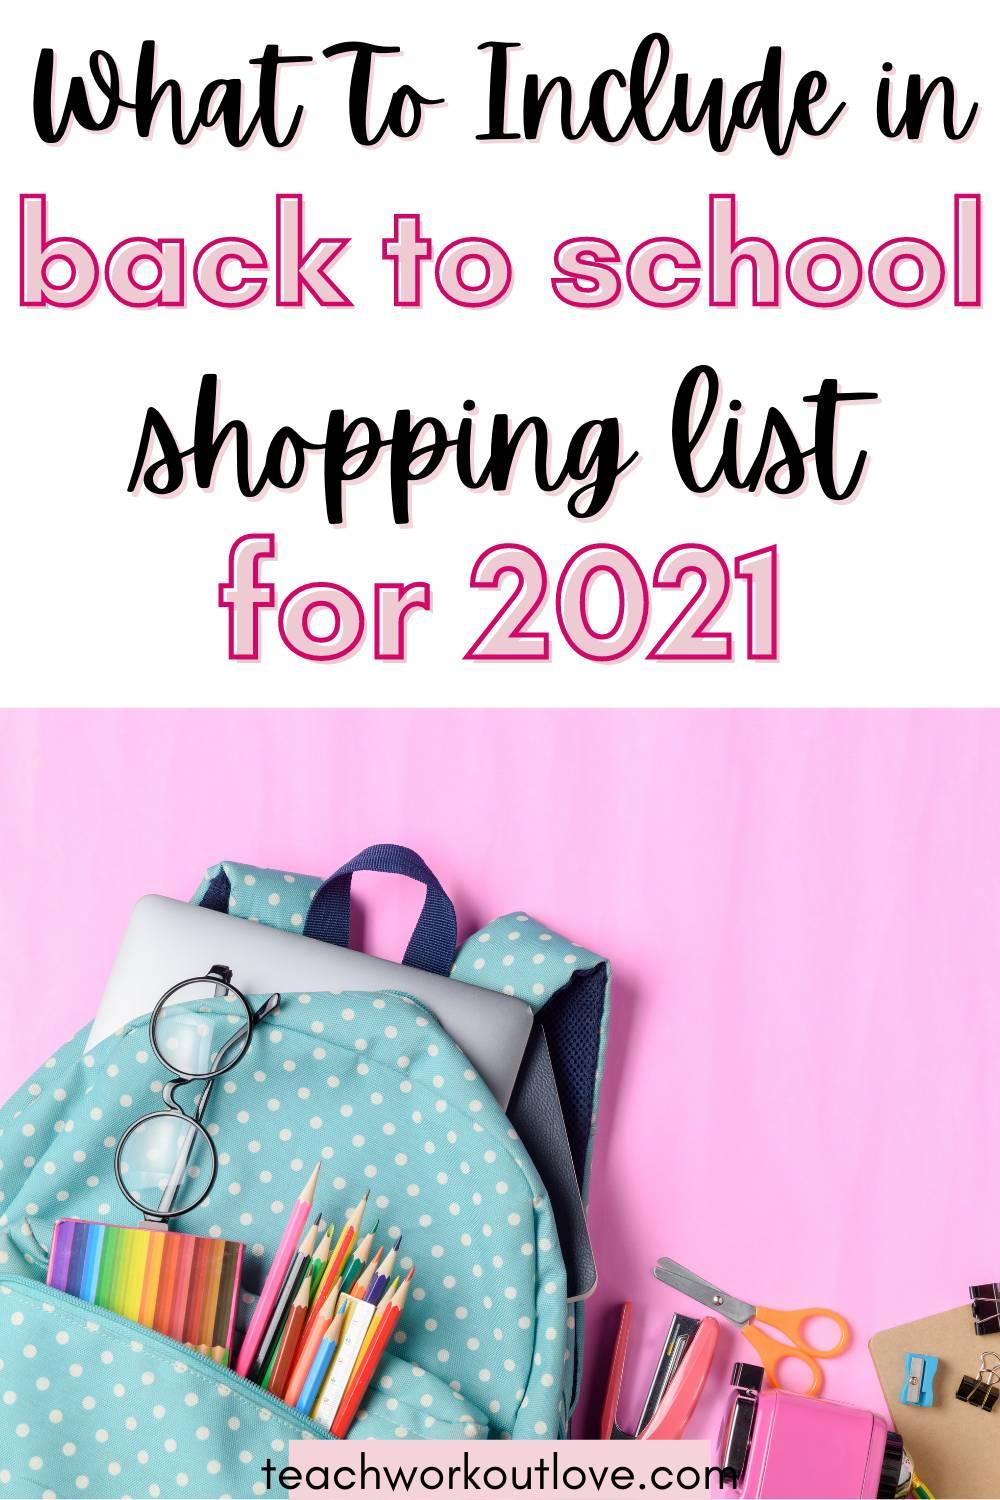 Having the right supplies can help prepare your child to tackle the new school year head-on and can help ensure that he or she has all the tools for academic success. If you're not sure what items you need to add to your back-to-school shopping list, cover all your bases with this quick guide.